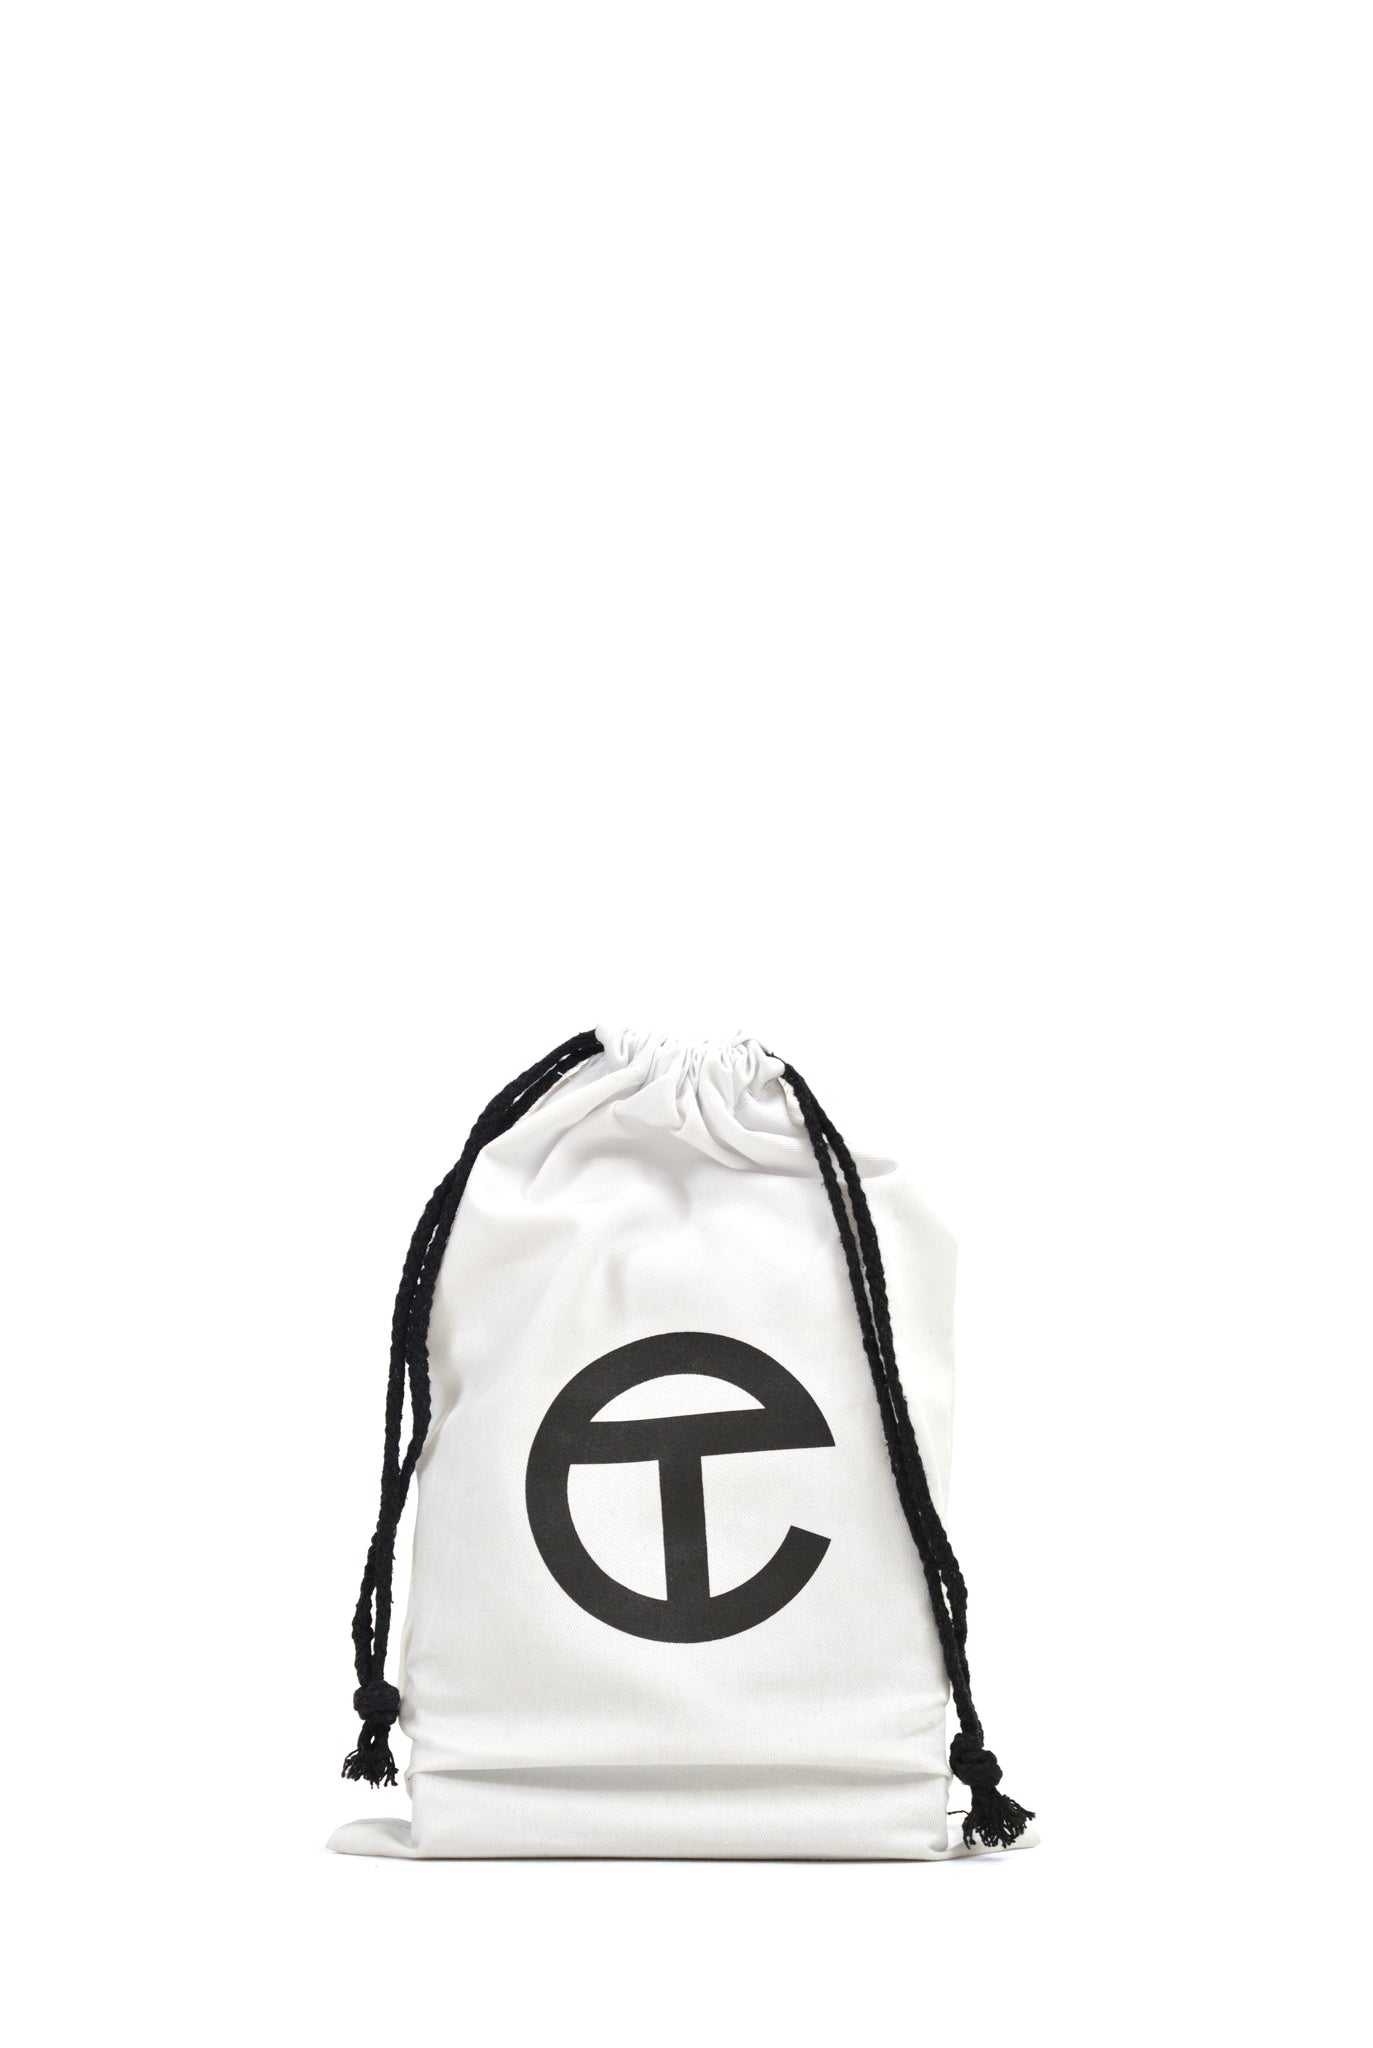 Telfar Small Shopping Bag, Tote